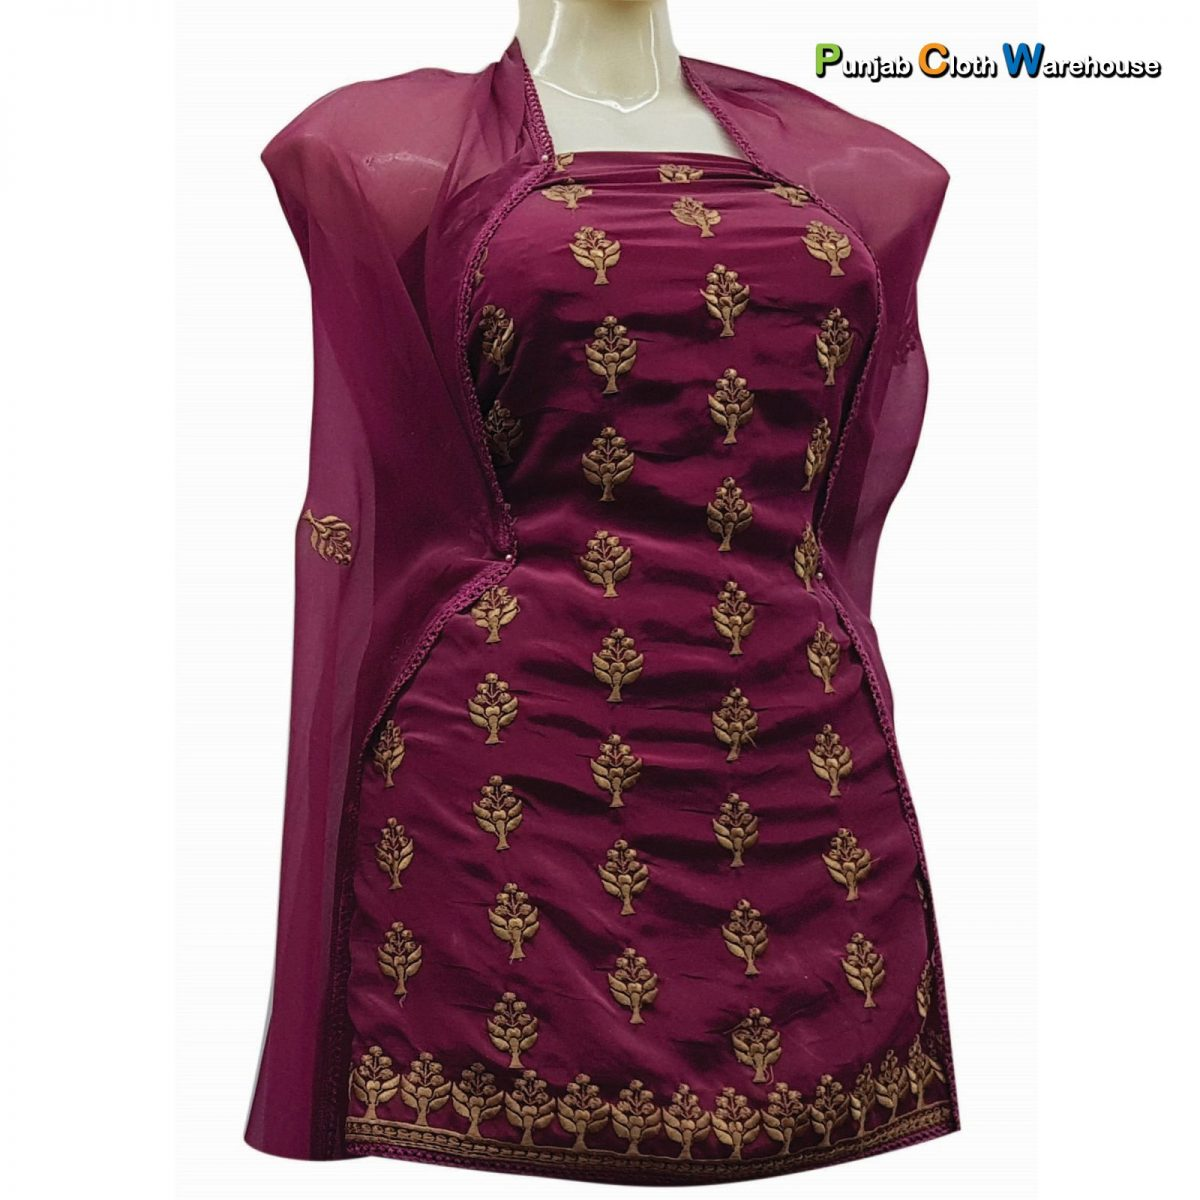 Ladies Suits - Cut Piece - Punjab Cloth Warehouse, Surrey (33)